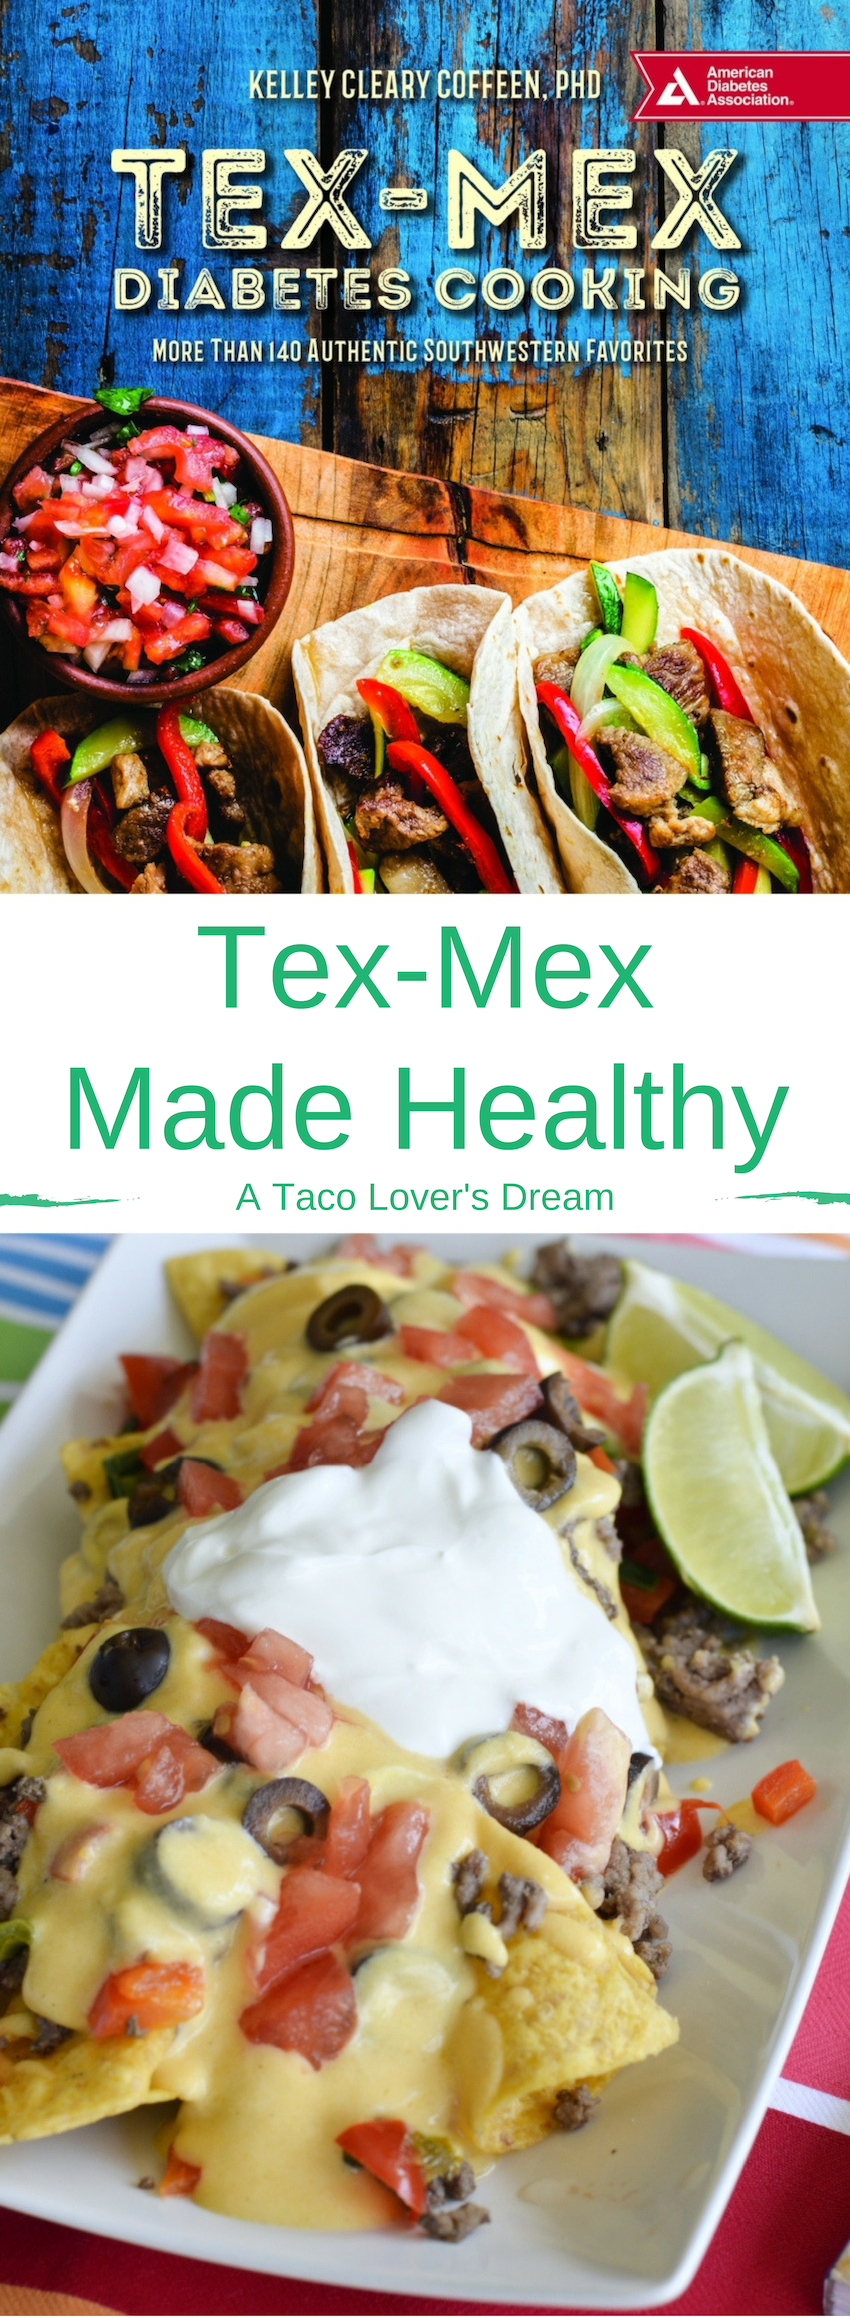 Tex-Mex Made Healthy, a Taco Lover's Dream | #TexMex #recipes #cookbook #diabetes #diabetic